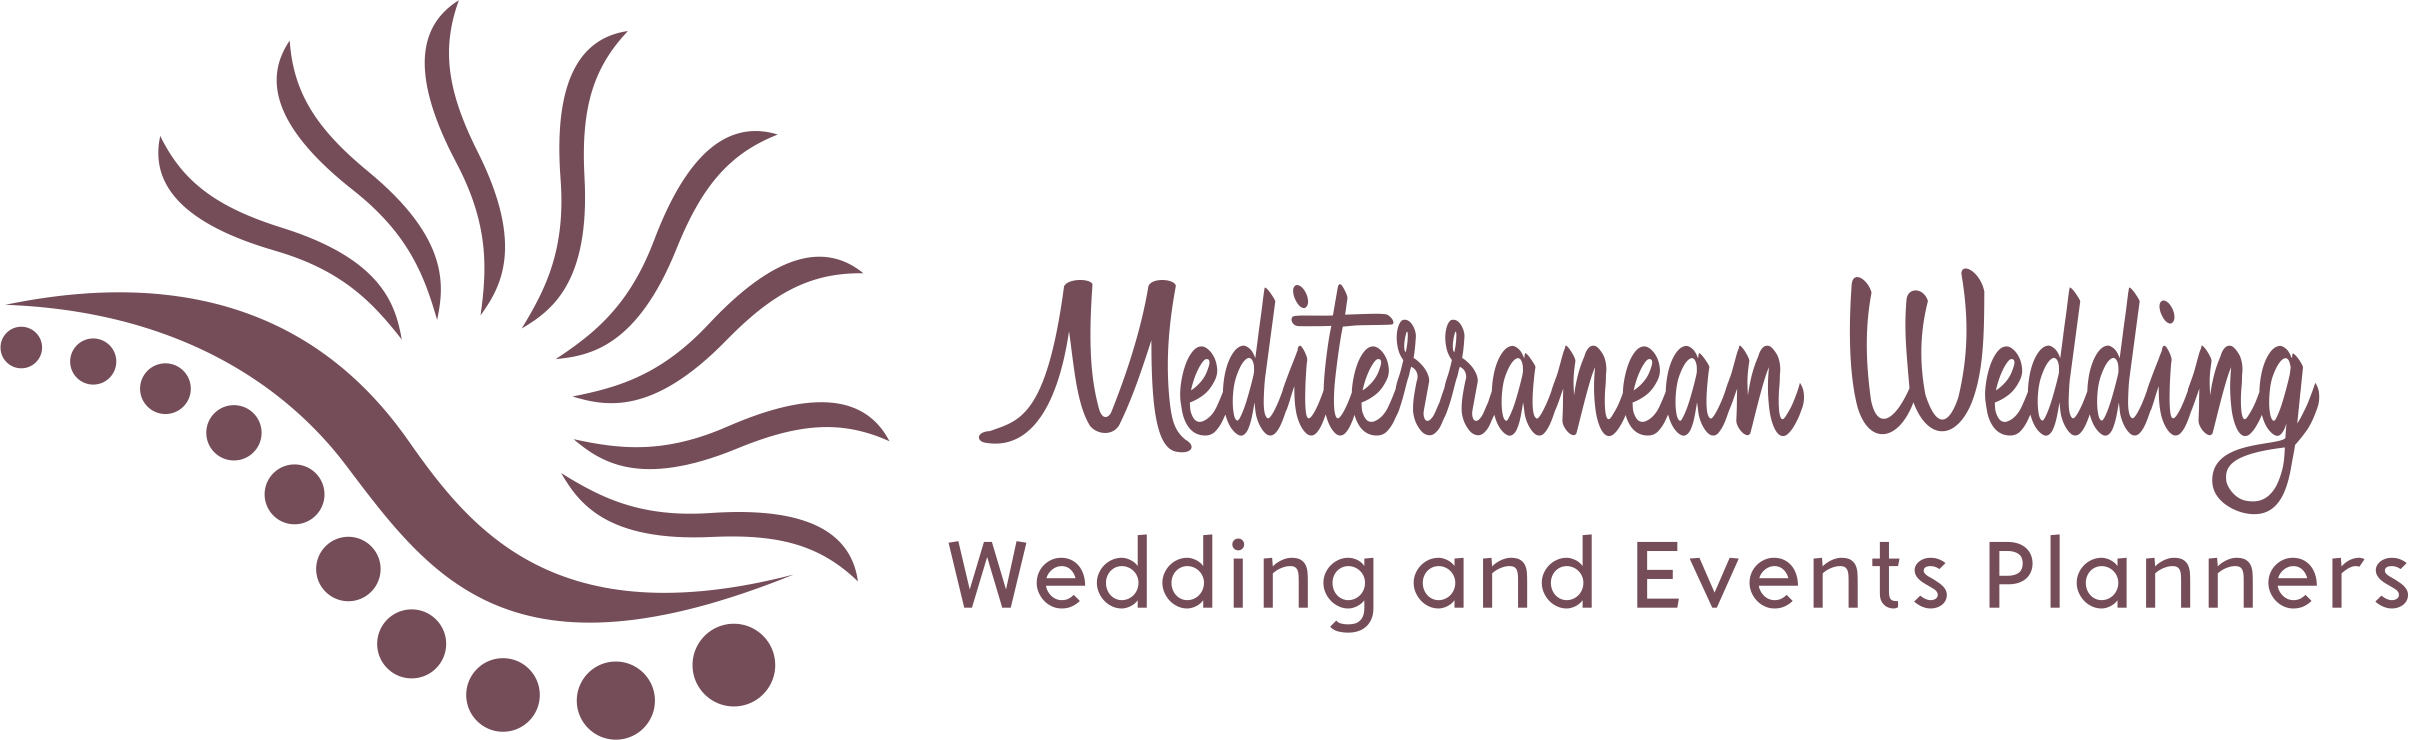 MEDITERRANEAN WEDDING